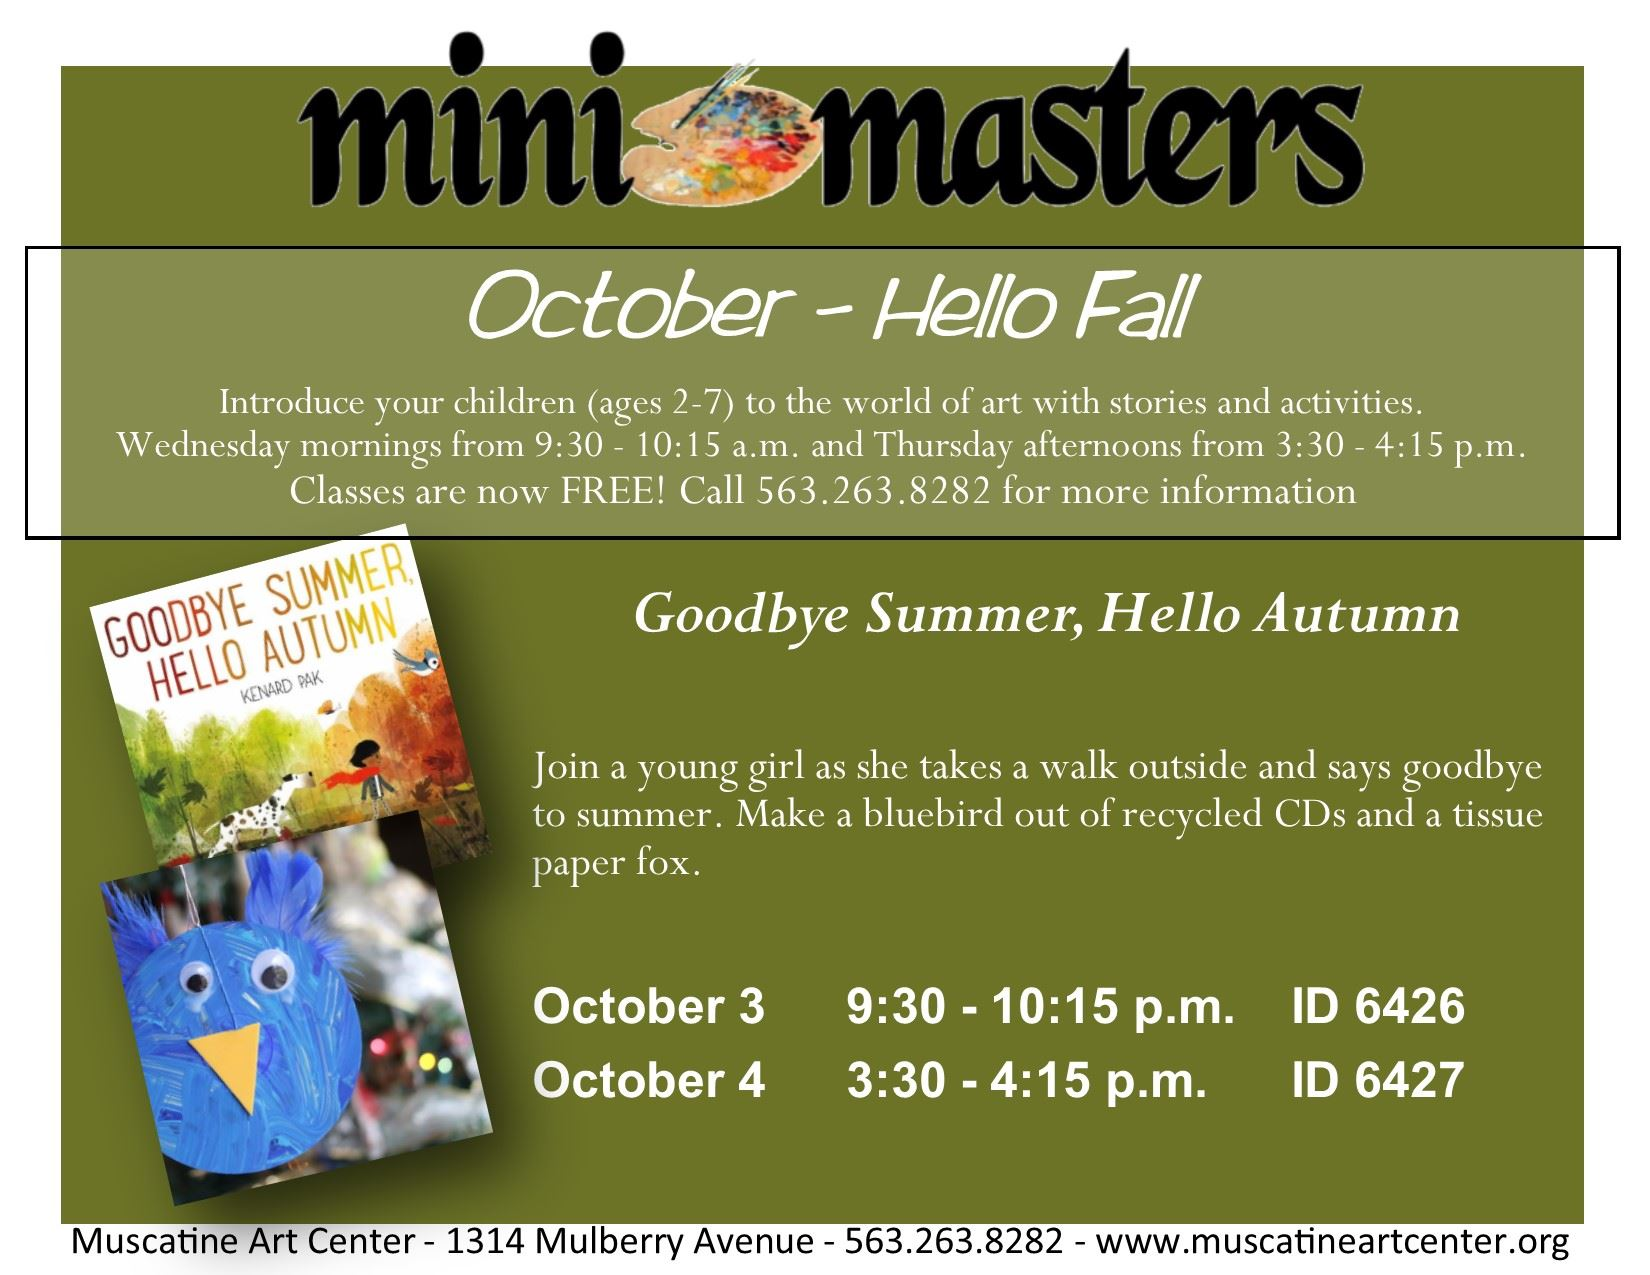 October 3-4 - mini masters - Goodbye Summer Hello Autumn